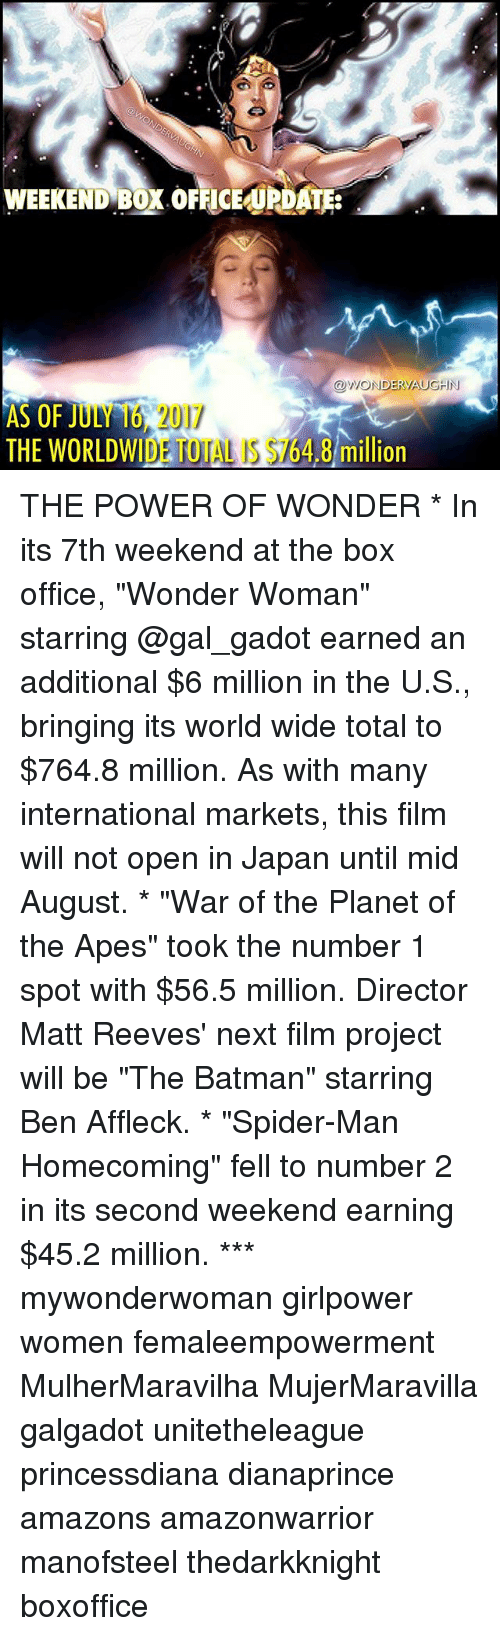 """Matt Reeves: WEEKEND BOX OFFICEUPDATE:  OWONDERVAUGHIN  AS OF JULY 16 2017  THE WORLDWIDE TOTAL IS $164.8 mill  THE WORLDWIDE TOTAL S $764.8 million  ion THE POWER OF WONDER * In its 7th weekend at the box office, """"Wonder Woman"""" starring @gal_gadot earned an additional $6 million in the U.S., bringing its world wide total to $764.8 million. As with many international markets, this film will not open in Japan until mid August. * """"War of the Planet of the Apes"""" took the number 1 spot with $56.5 million. Director Matt Reeves' next film project will be """"The Batman"""" starring Ben Affleck. * """"Spider-Man Homecoming"""" fell to number 2 in its second weekend earning $45.2 million. *** mywonderwoman girlpower women femaleempowerment MulherMaravilha MujerMaravilla galgadot unitetheleague princessdiana dianaprince amazons amazonwarrior manofsteel thedarkknight boxoffice"""